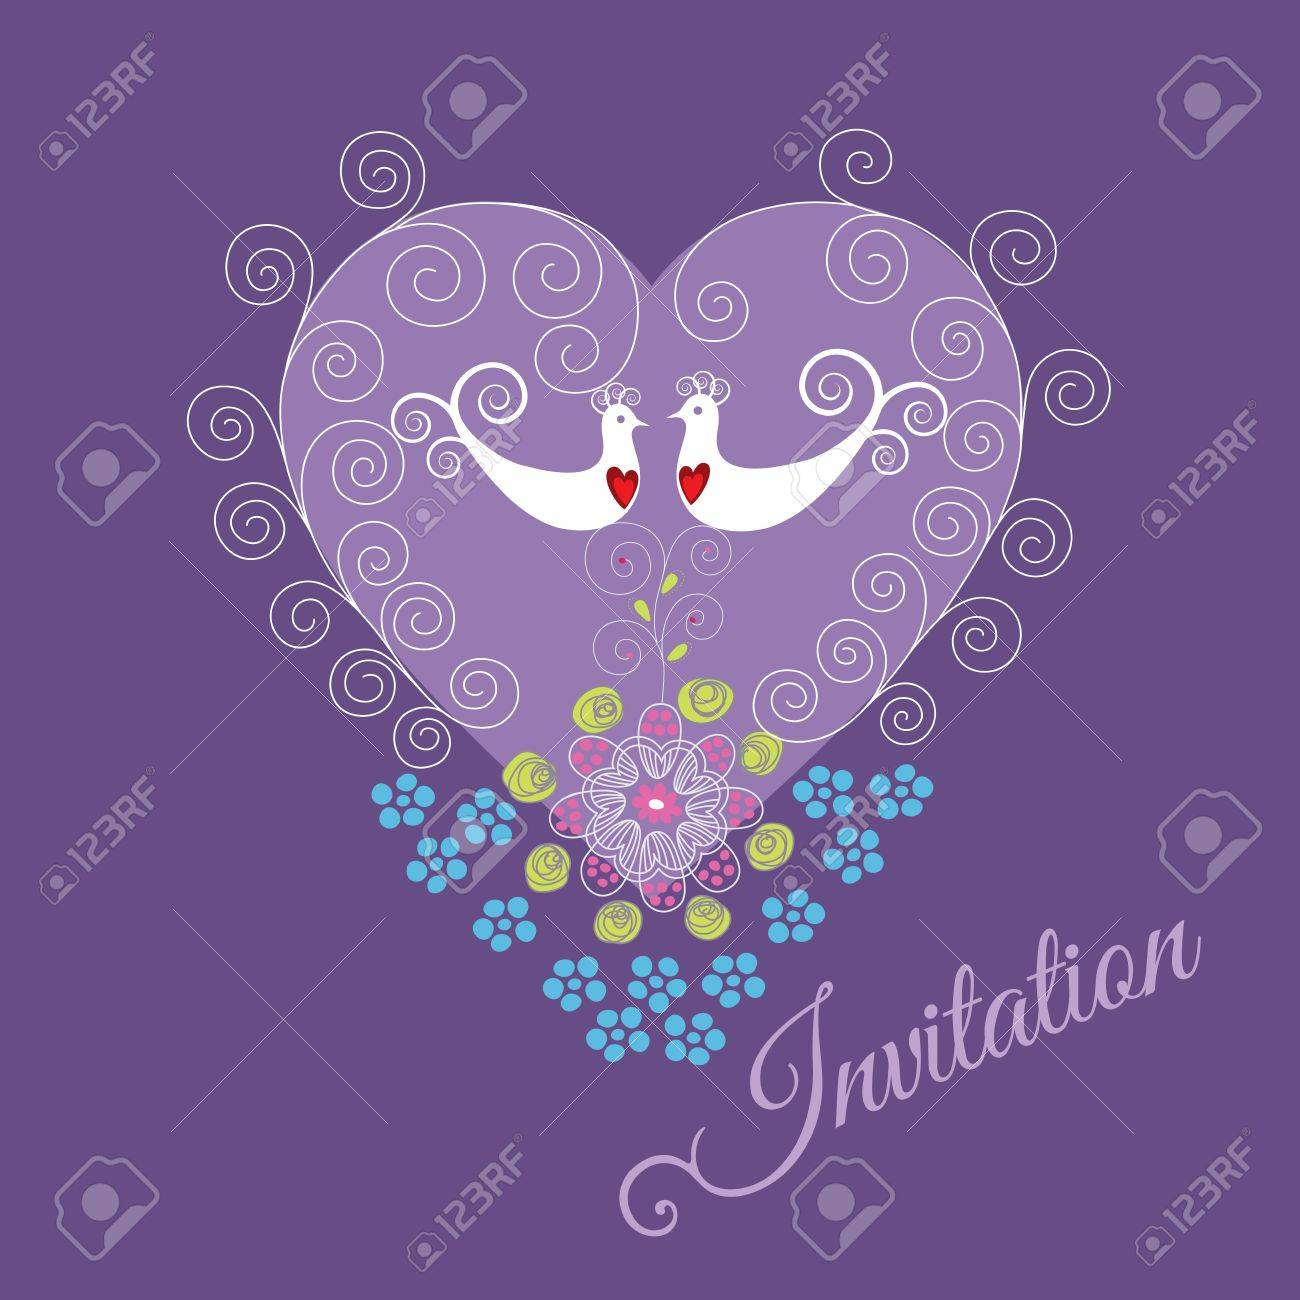 Purple invitation with two love birds, heart ornament, swirls and flowers Stock Vector - 18818763